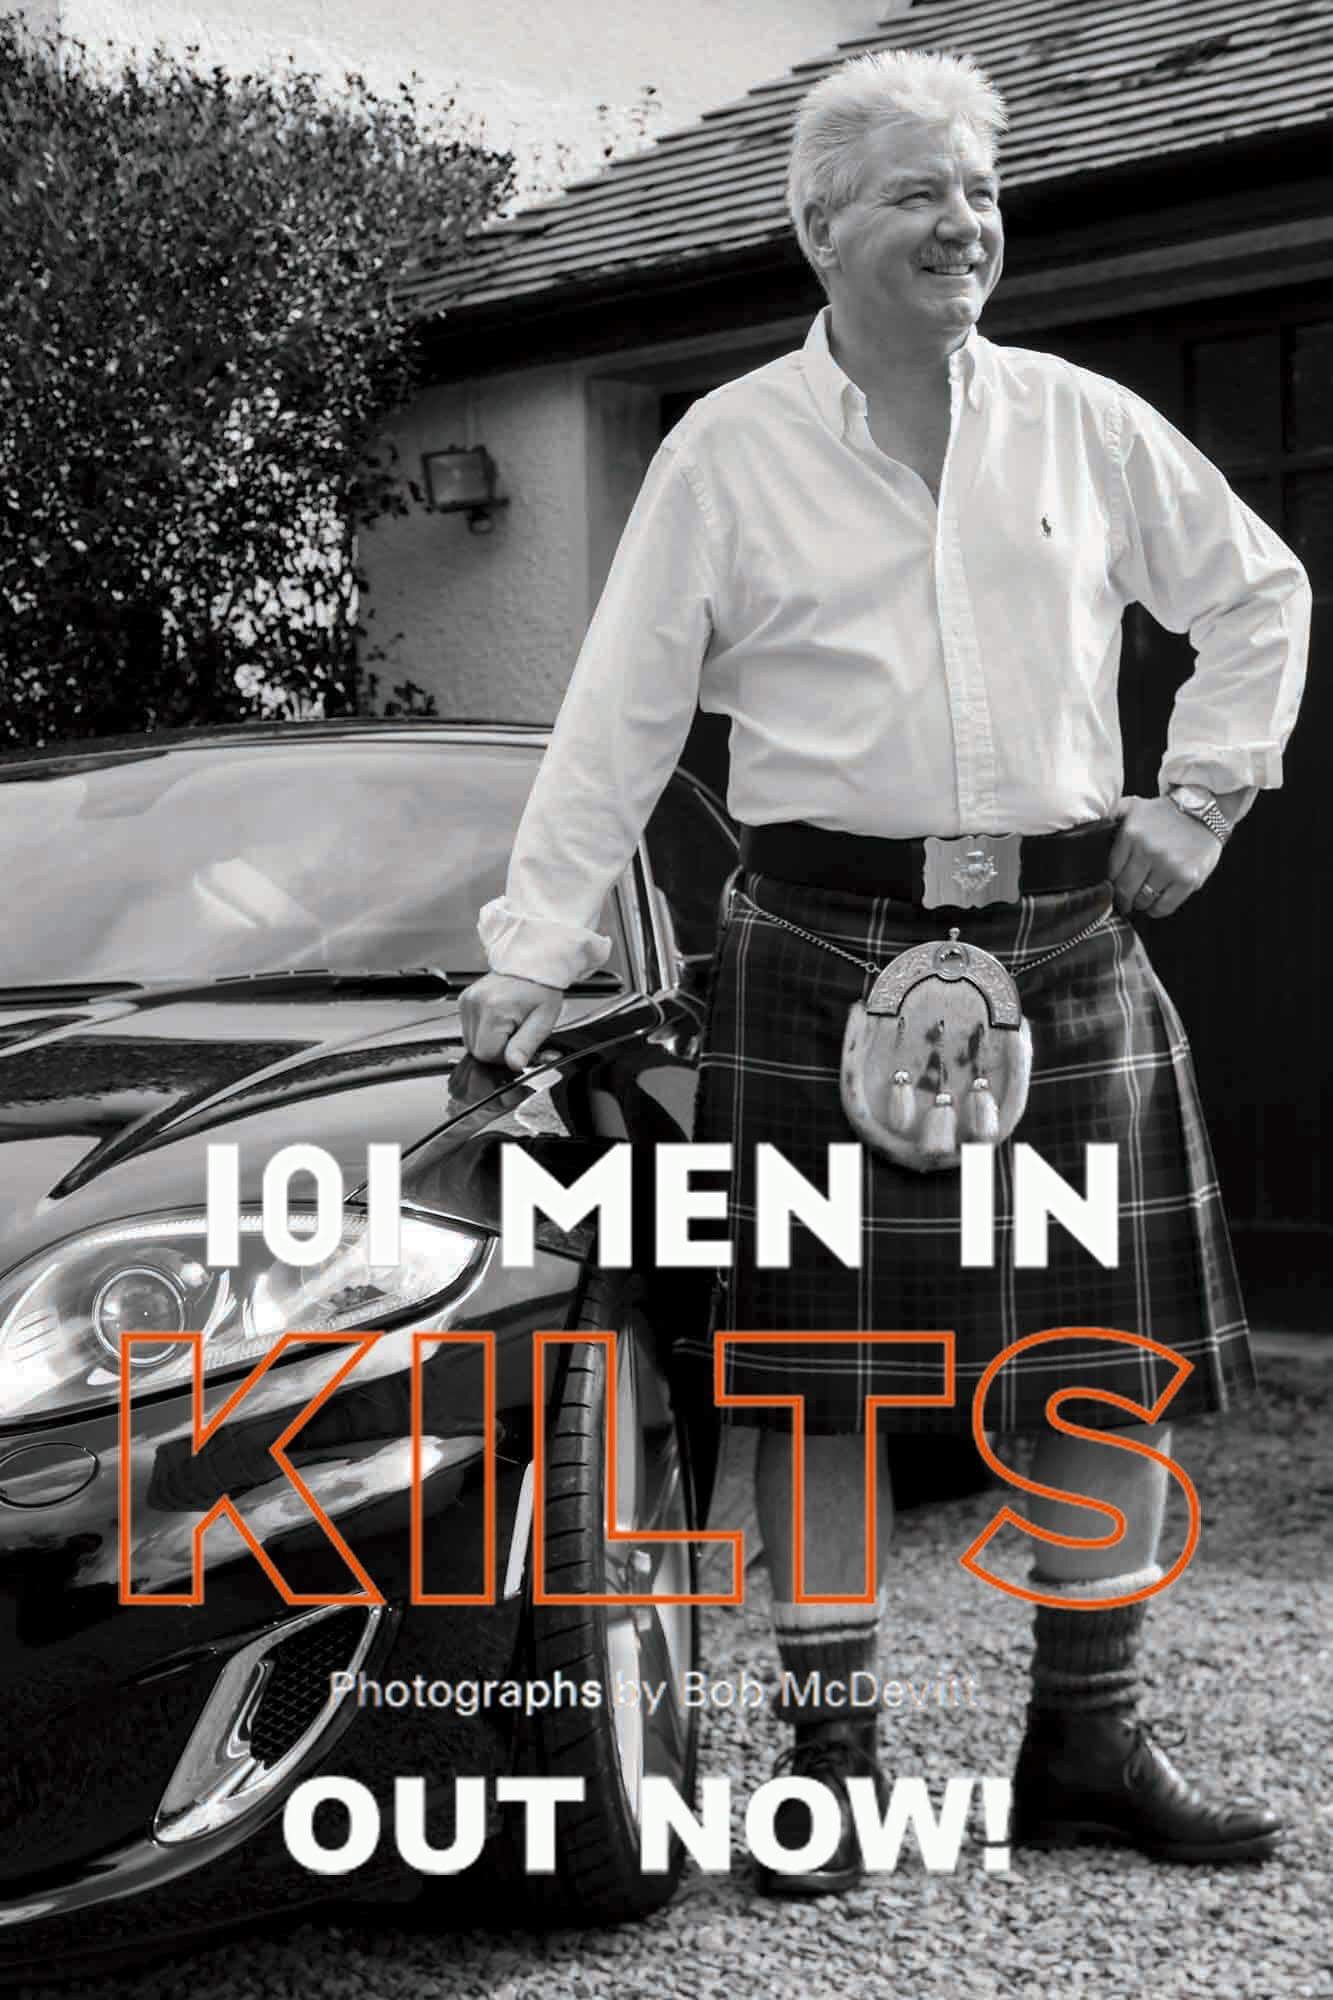 Delighted To Be Included In The 101 Men In Kilts Book By